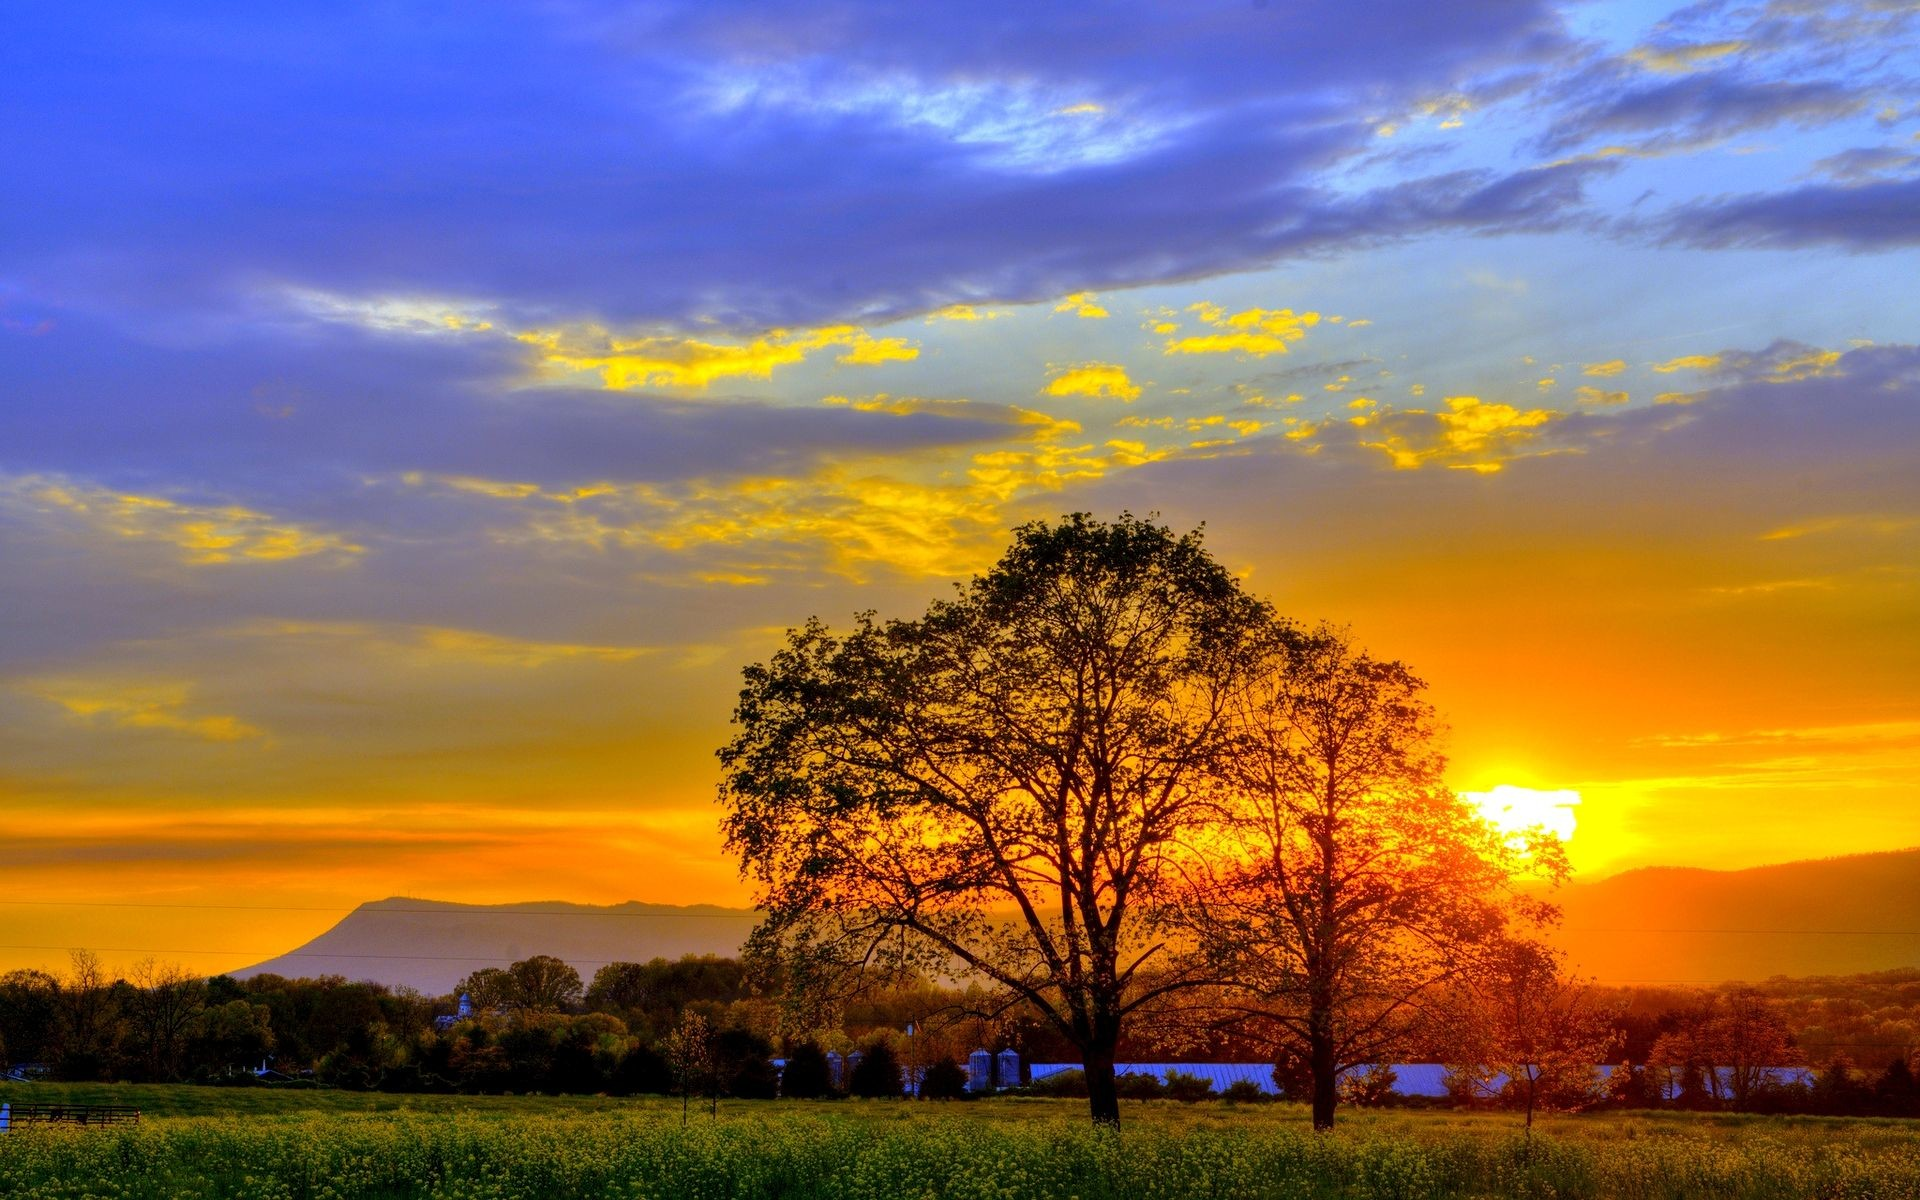 Res: 1920x1200, Summer Sunset Wallpapers Widescreen 2 HD Wallpapers | Hdimges.